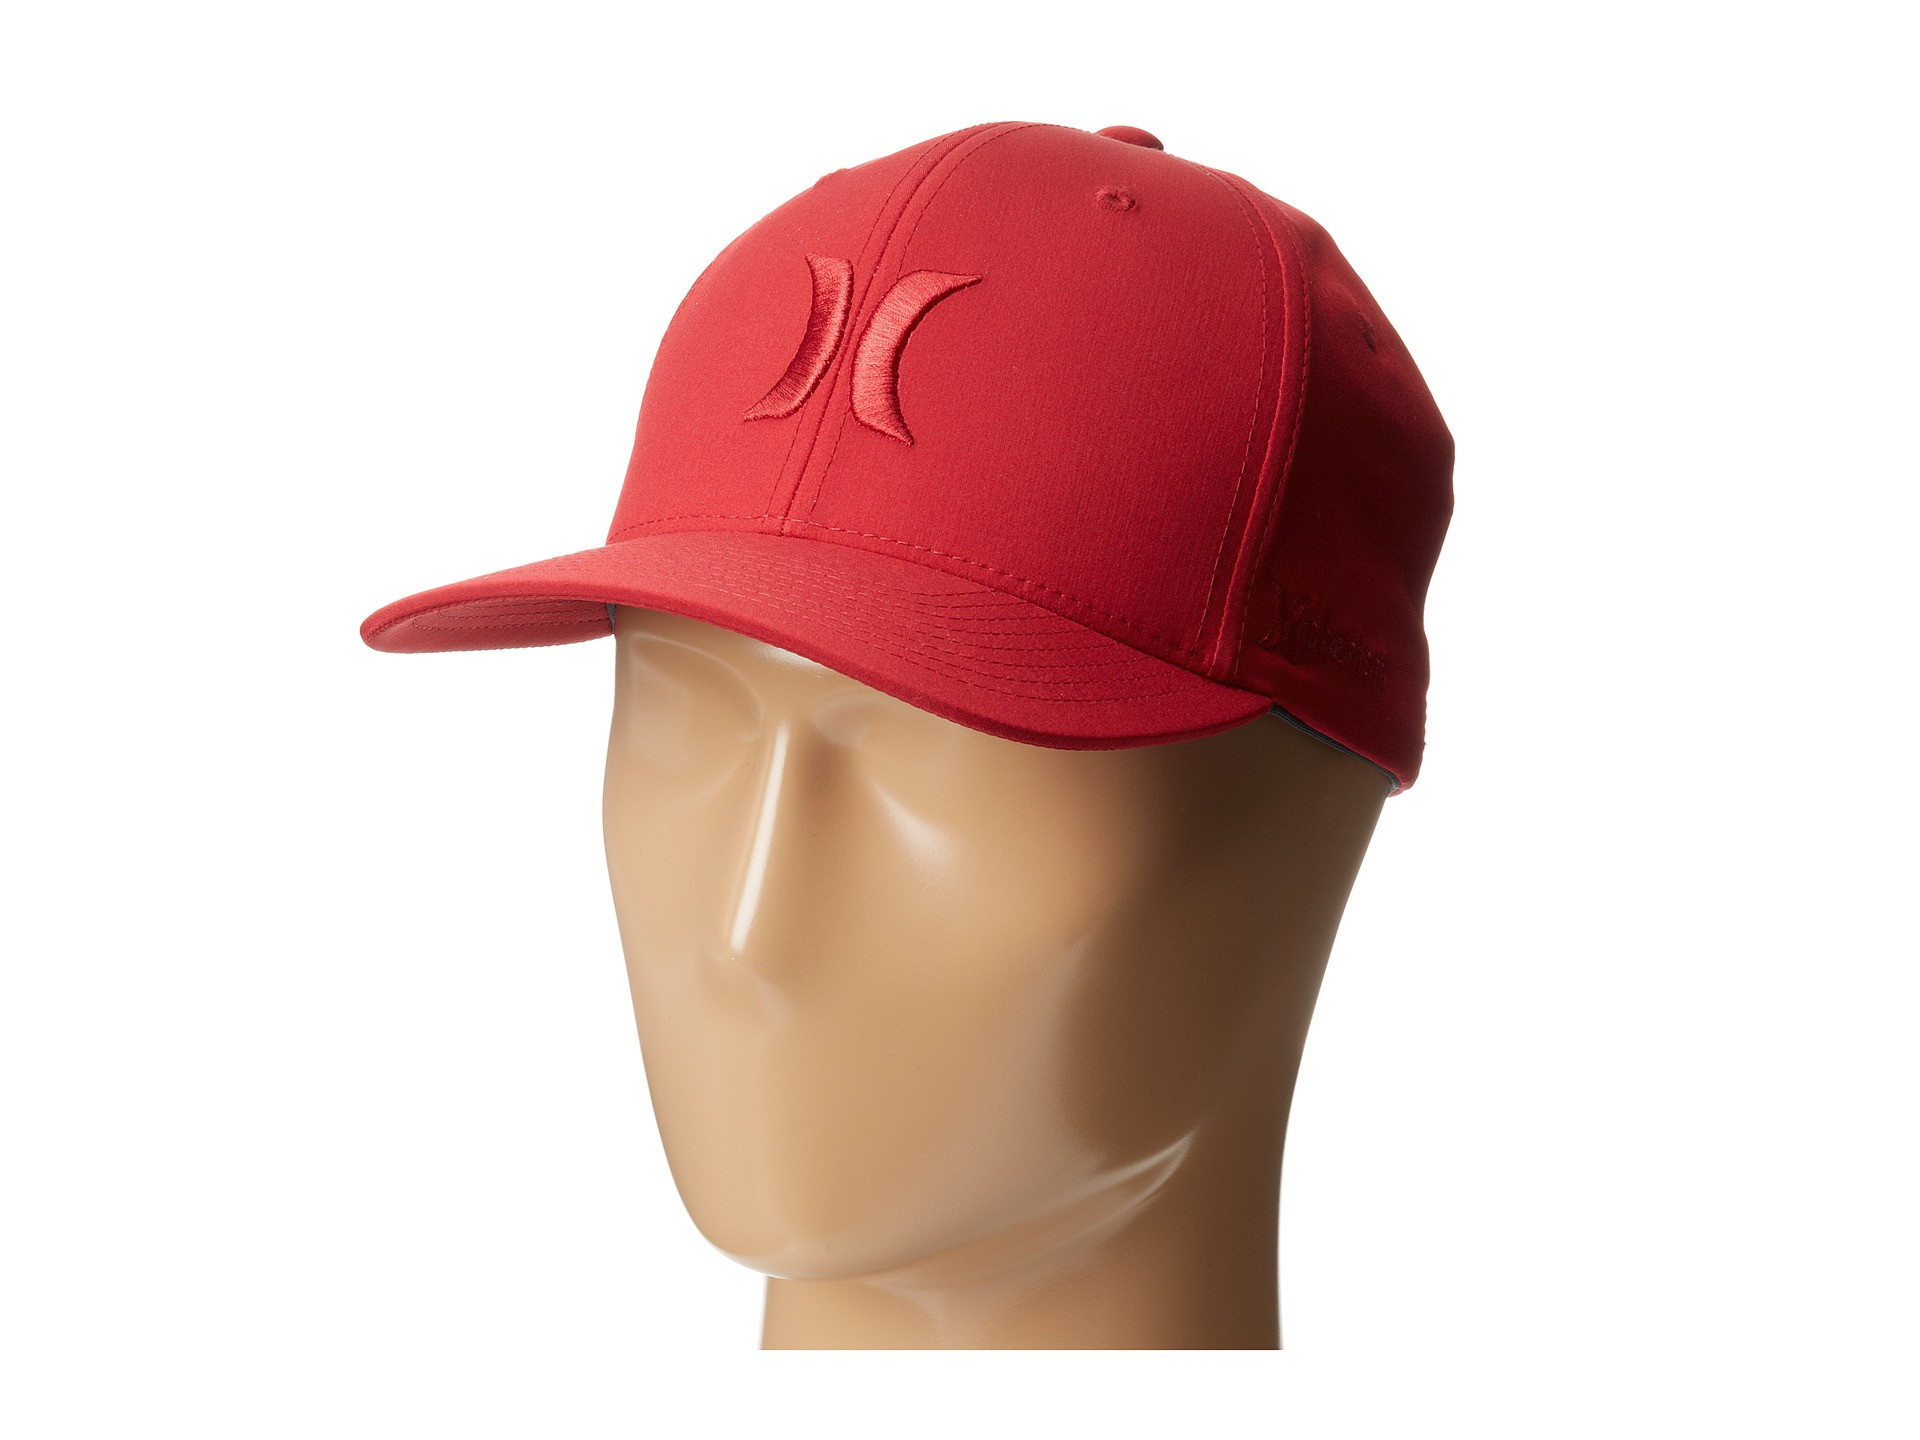 quality design 99d54 ff2c5 where to buy lyst hurley phantom one only flexfit permacurve hat in red for  men 53ba9